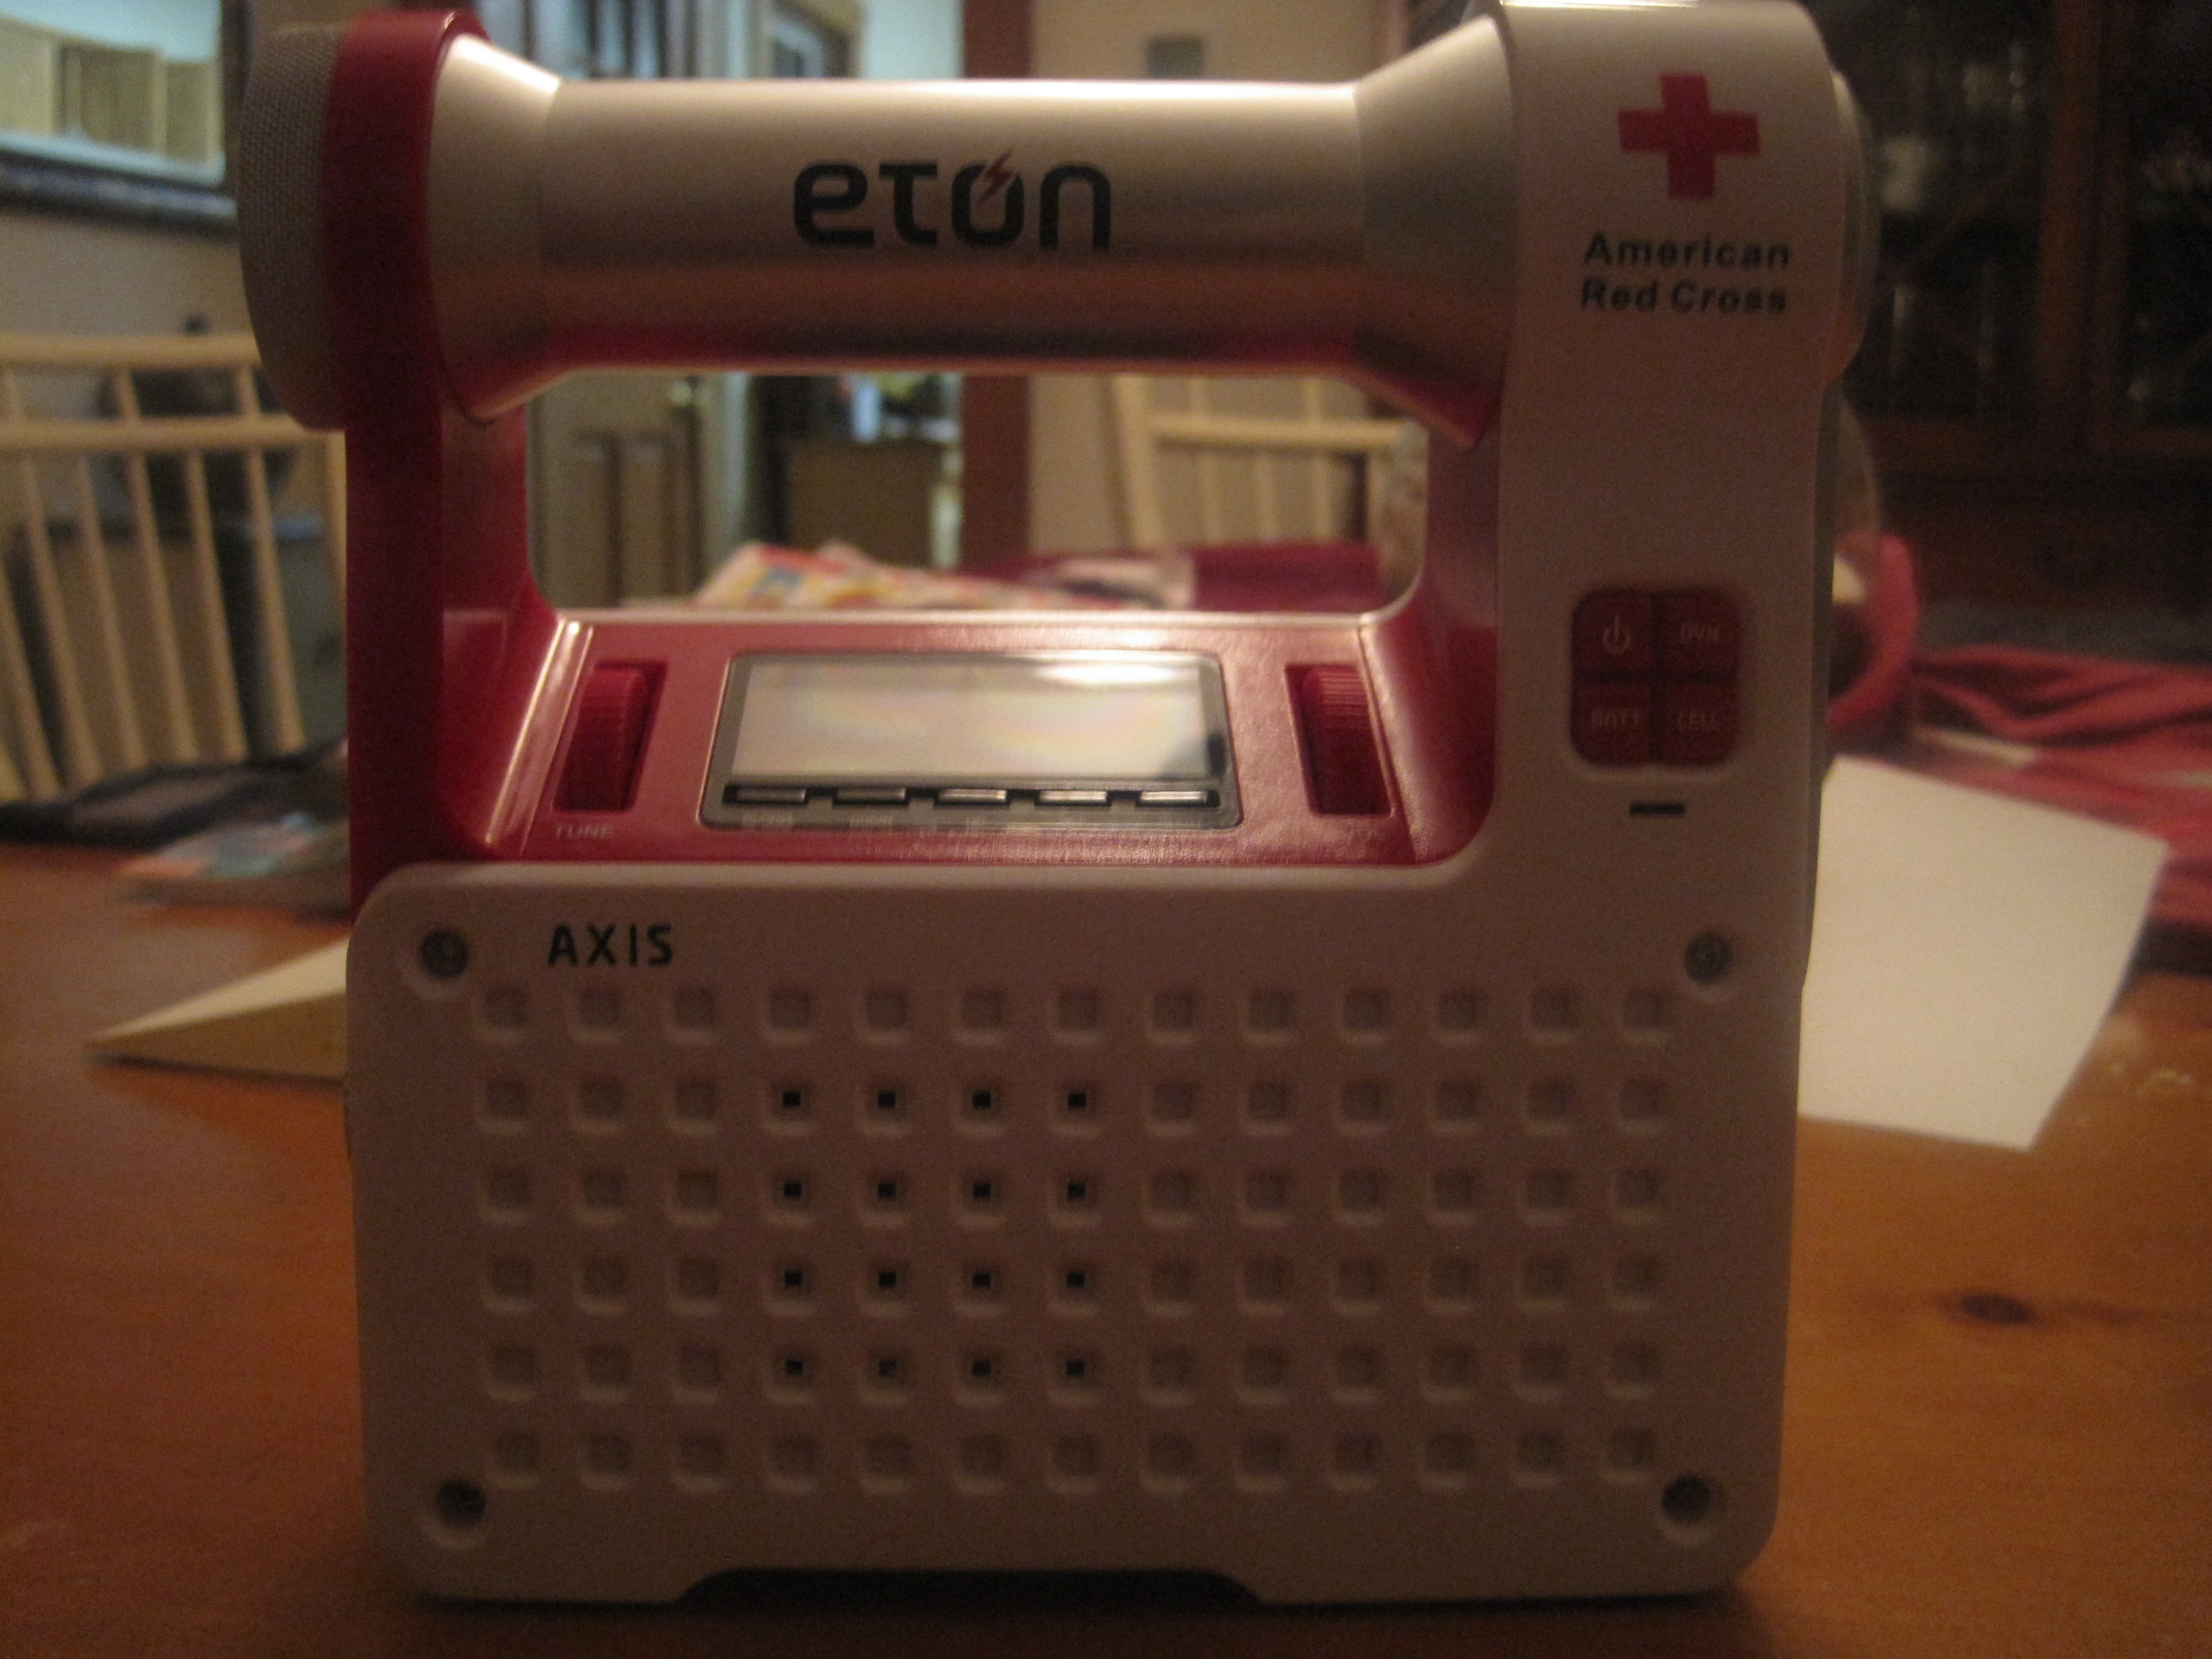 Radios (Including Internet Radio) Home Tech Accessibility